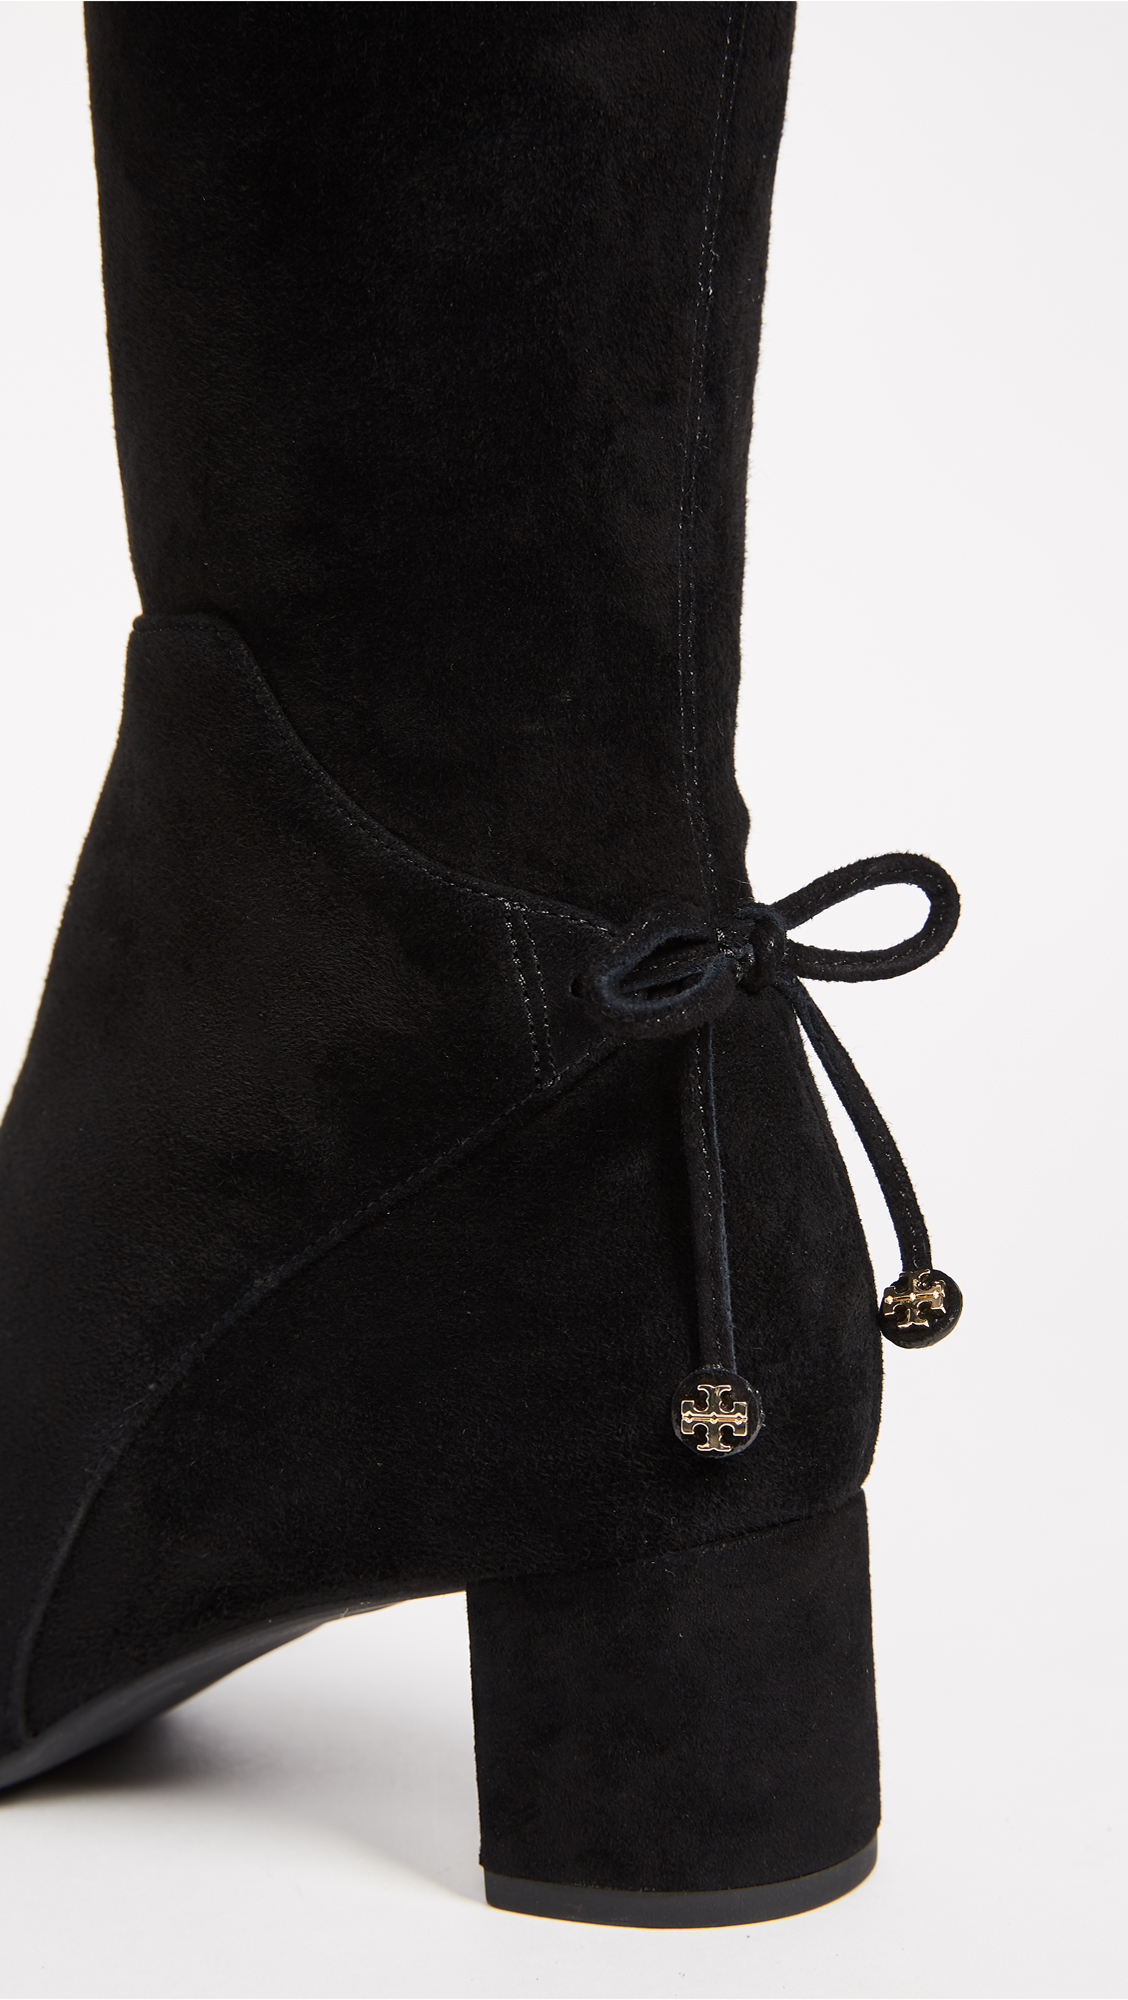 b16d8faaf83 Tory Burch Laila 45Mm Over-the-Knee Boots